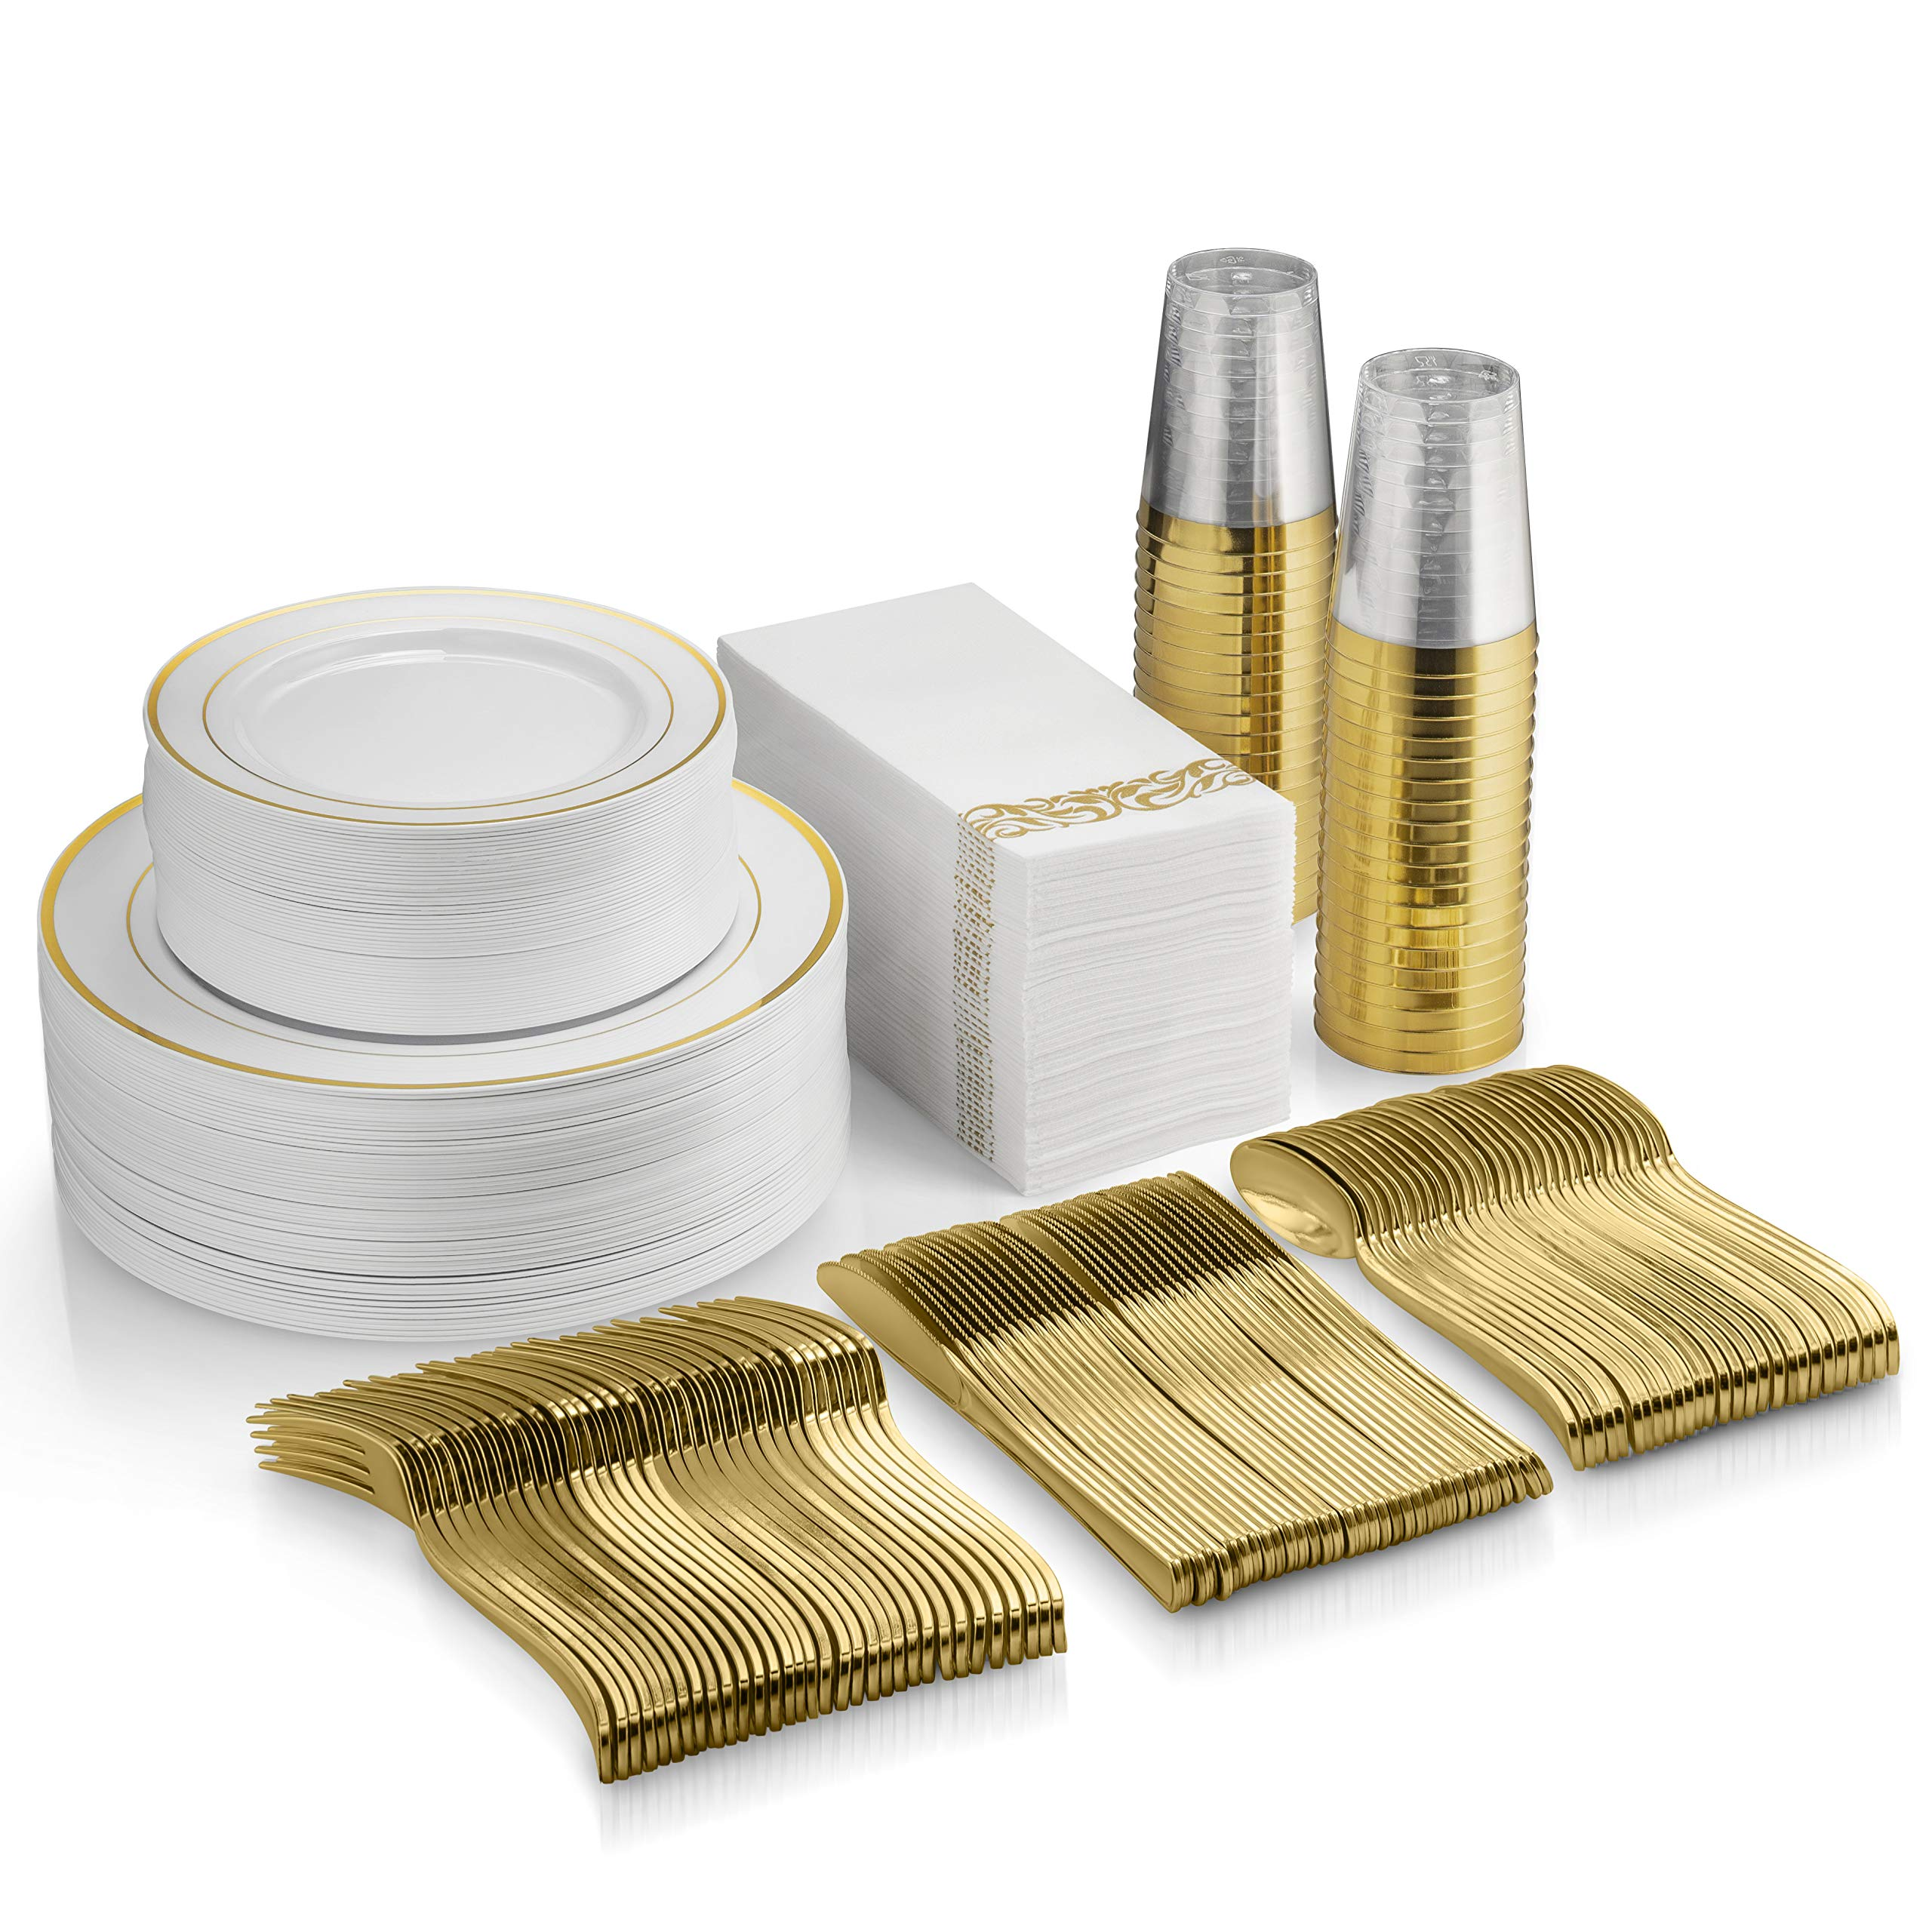 350 Piece Gold Dinnerware Set - 100 Gold Rim Plastic Plates - 50 Gold Plastic Silverware - 50 Gold Plastic Cups - 50 Linen Like Gold Paper Napkins, 50 Guest Disposable Gold Dinnerware Set by Munfix